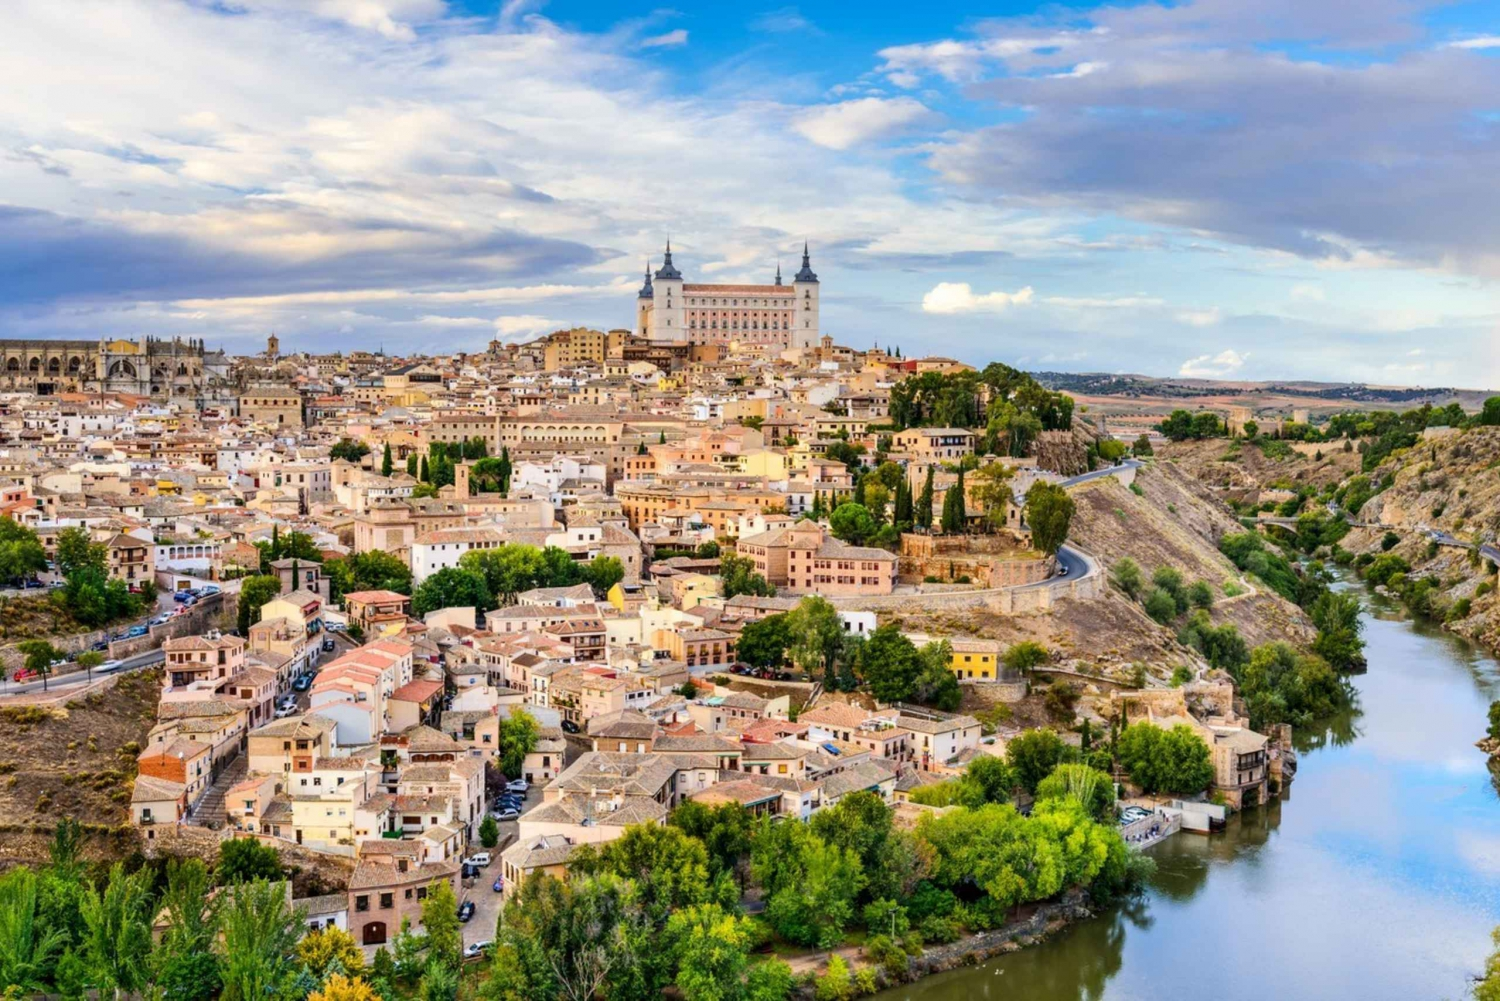 Toledo: Full Day Trip With Guided Walking Tour from Madrid